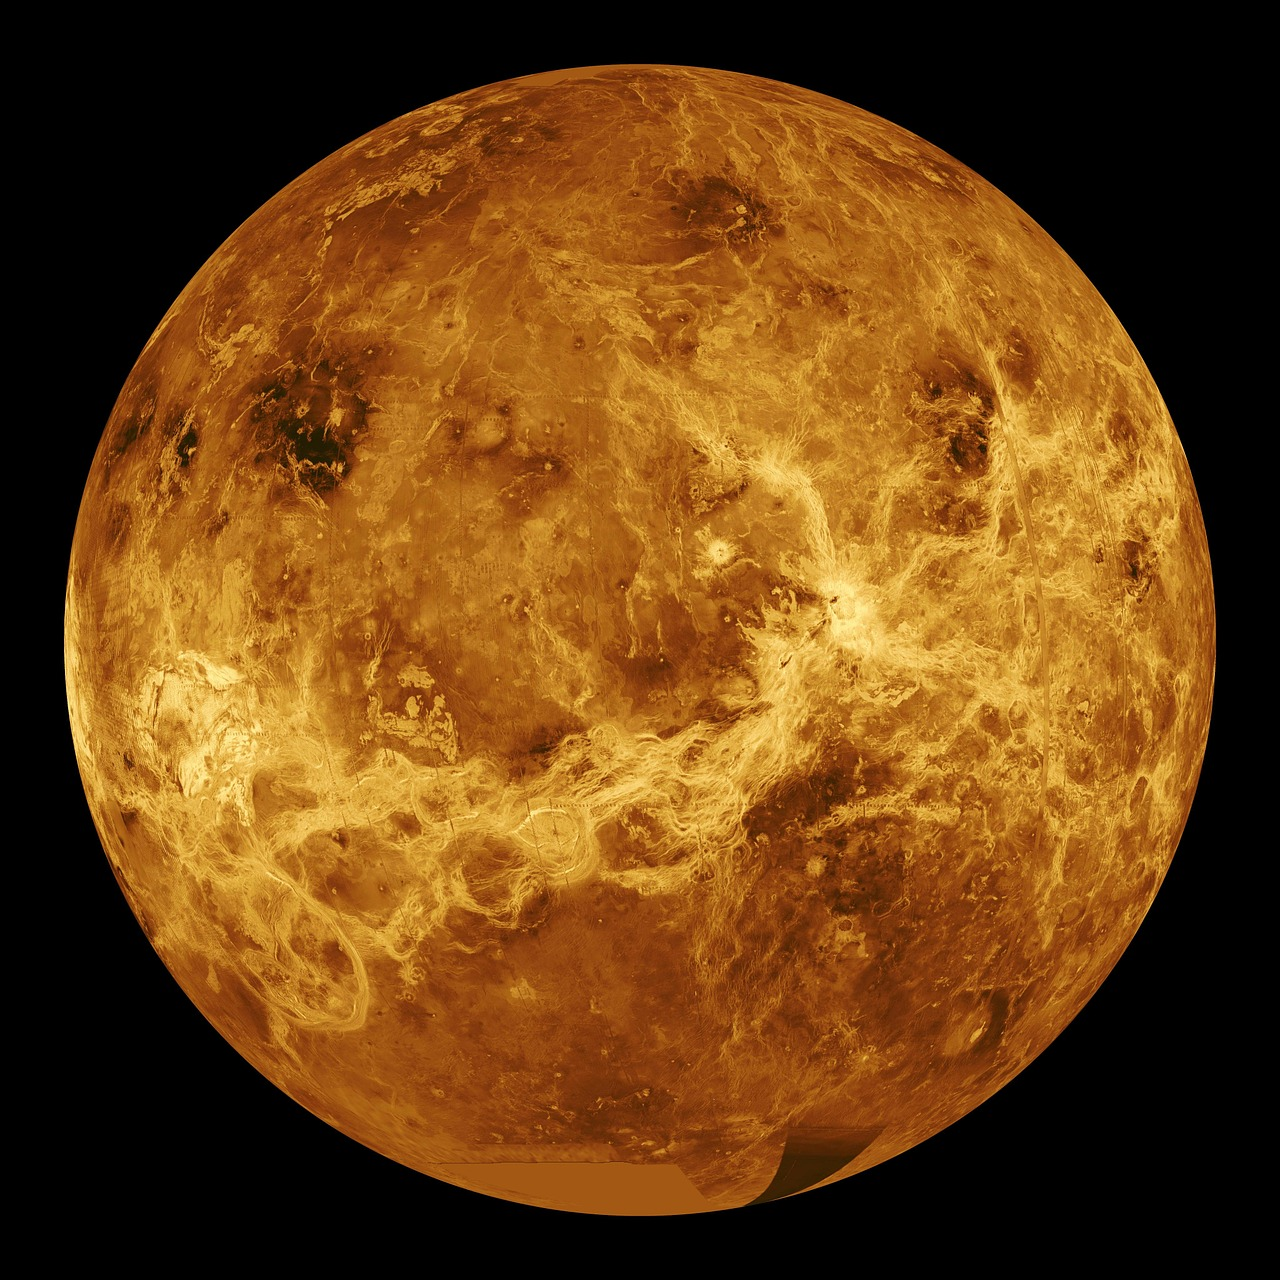 venus surface hot free photo